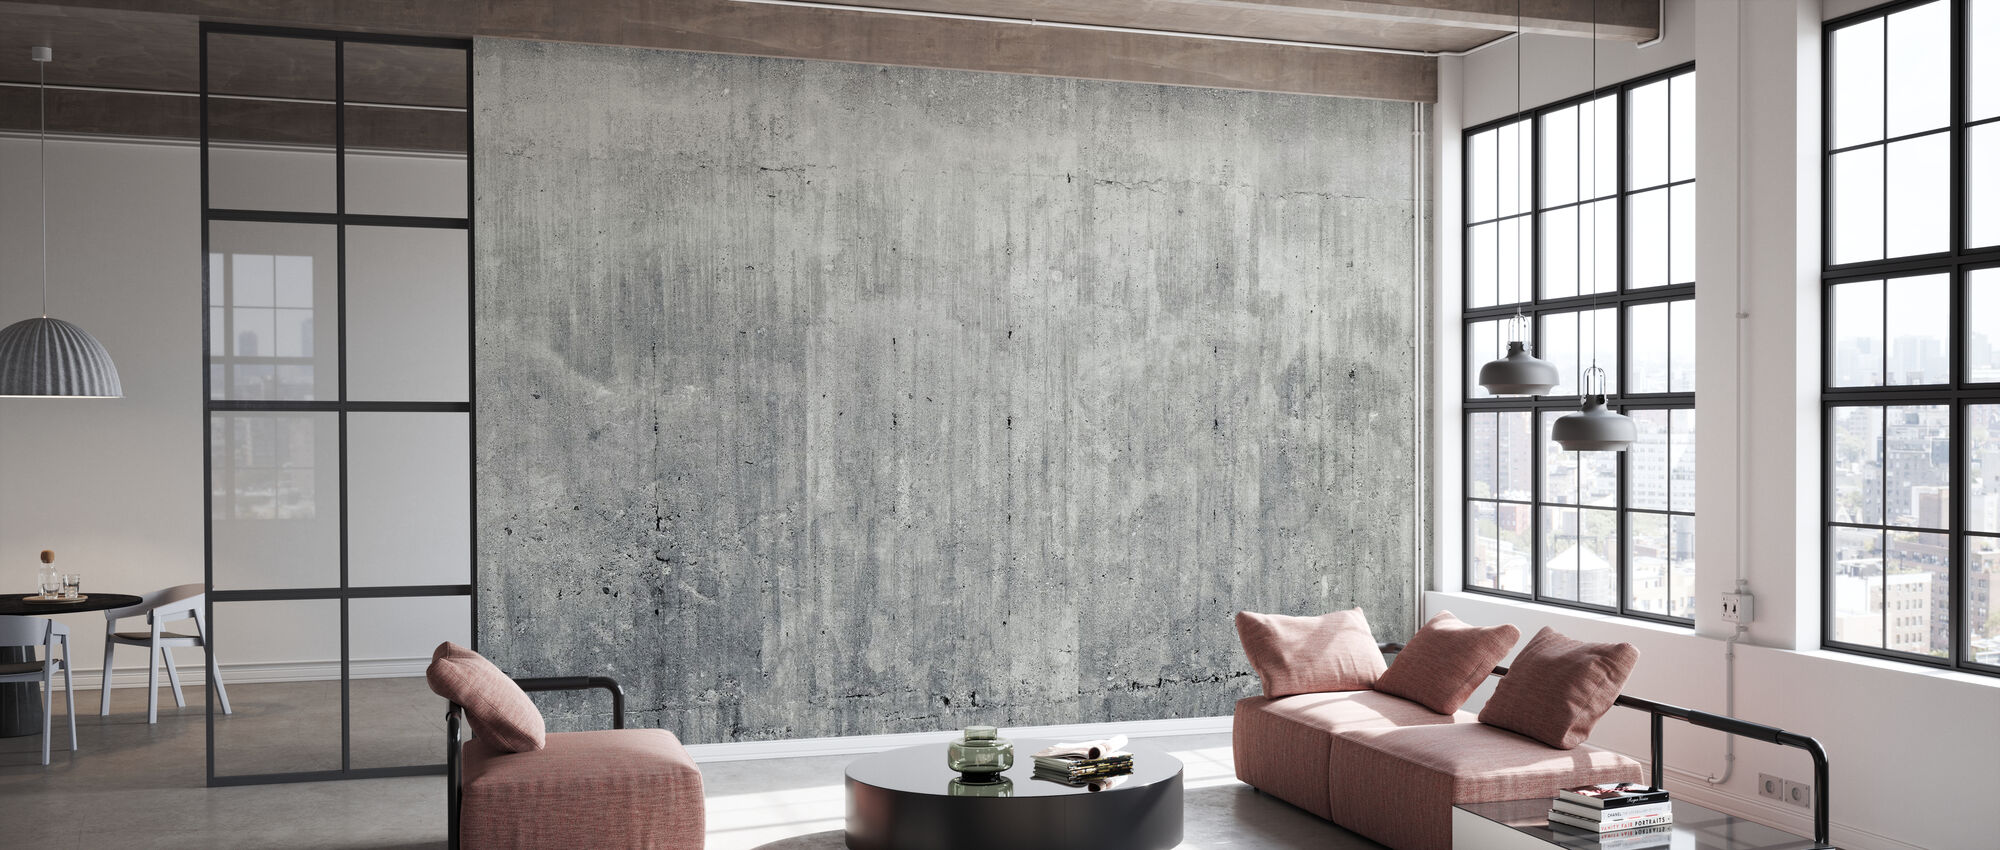 Grunge Concrete Wall - Wallpaper - Office